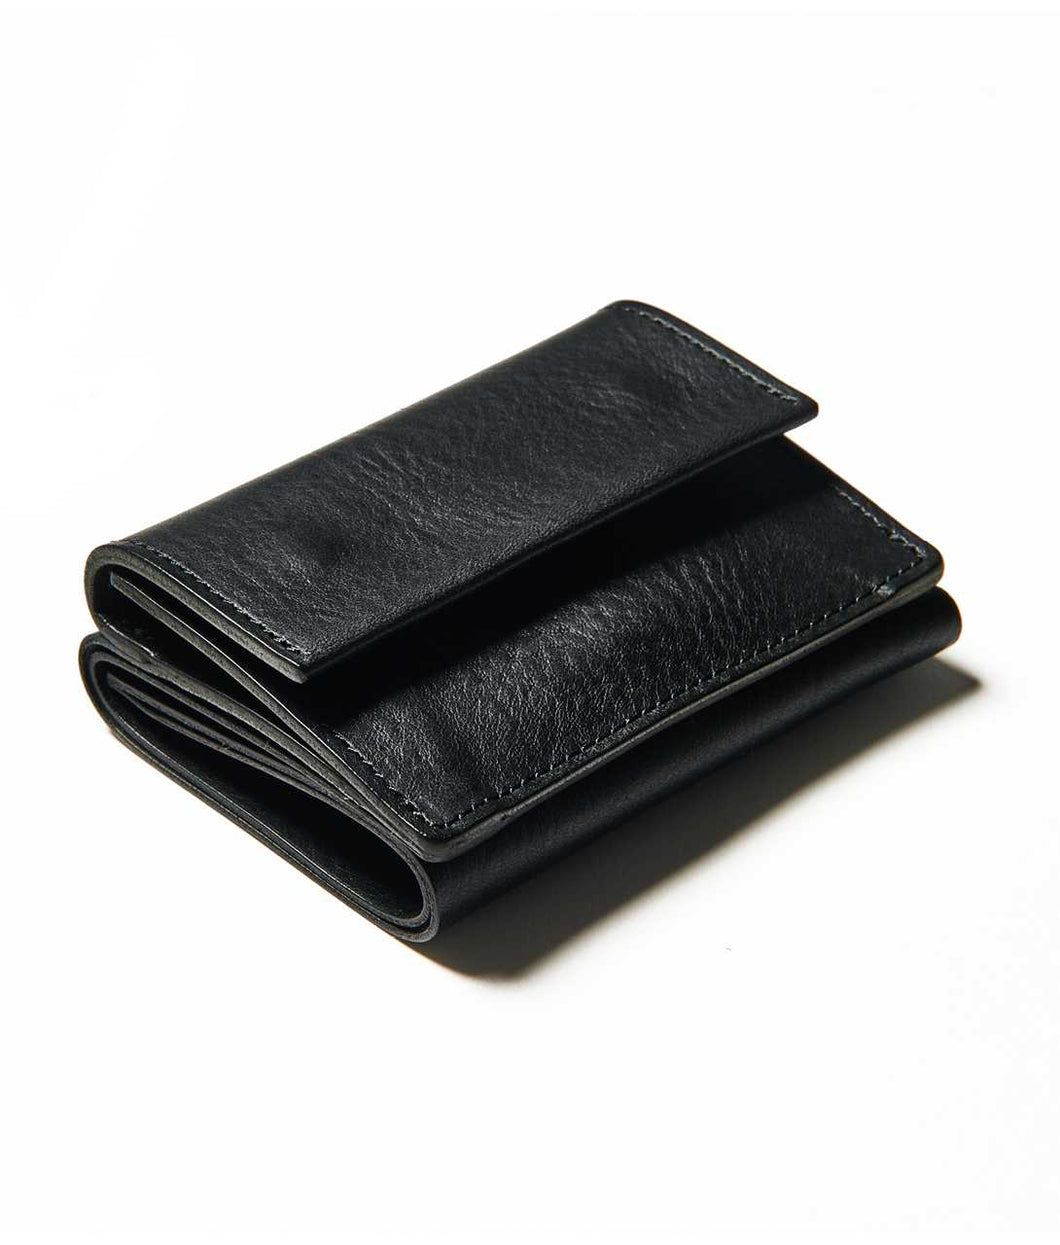 〈LIM DESIGN〉MINI WALLET / ミニウォレット(BLACK)